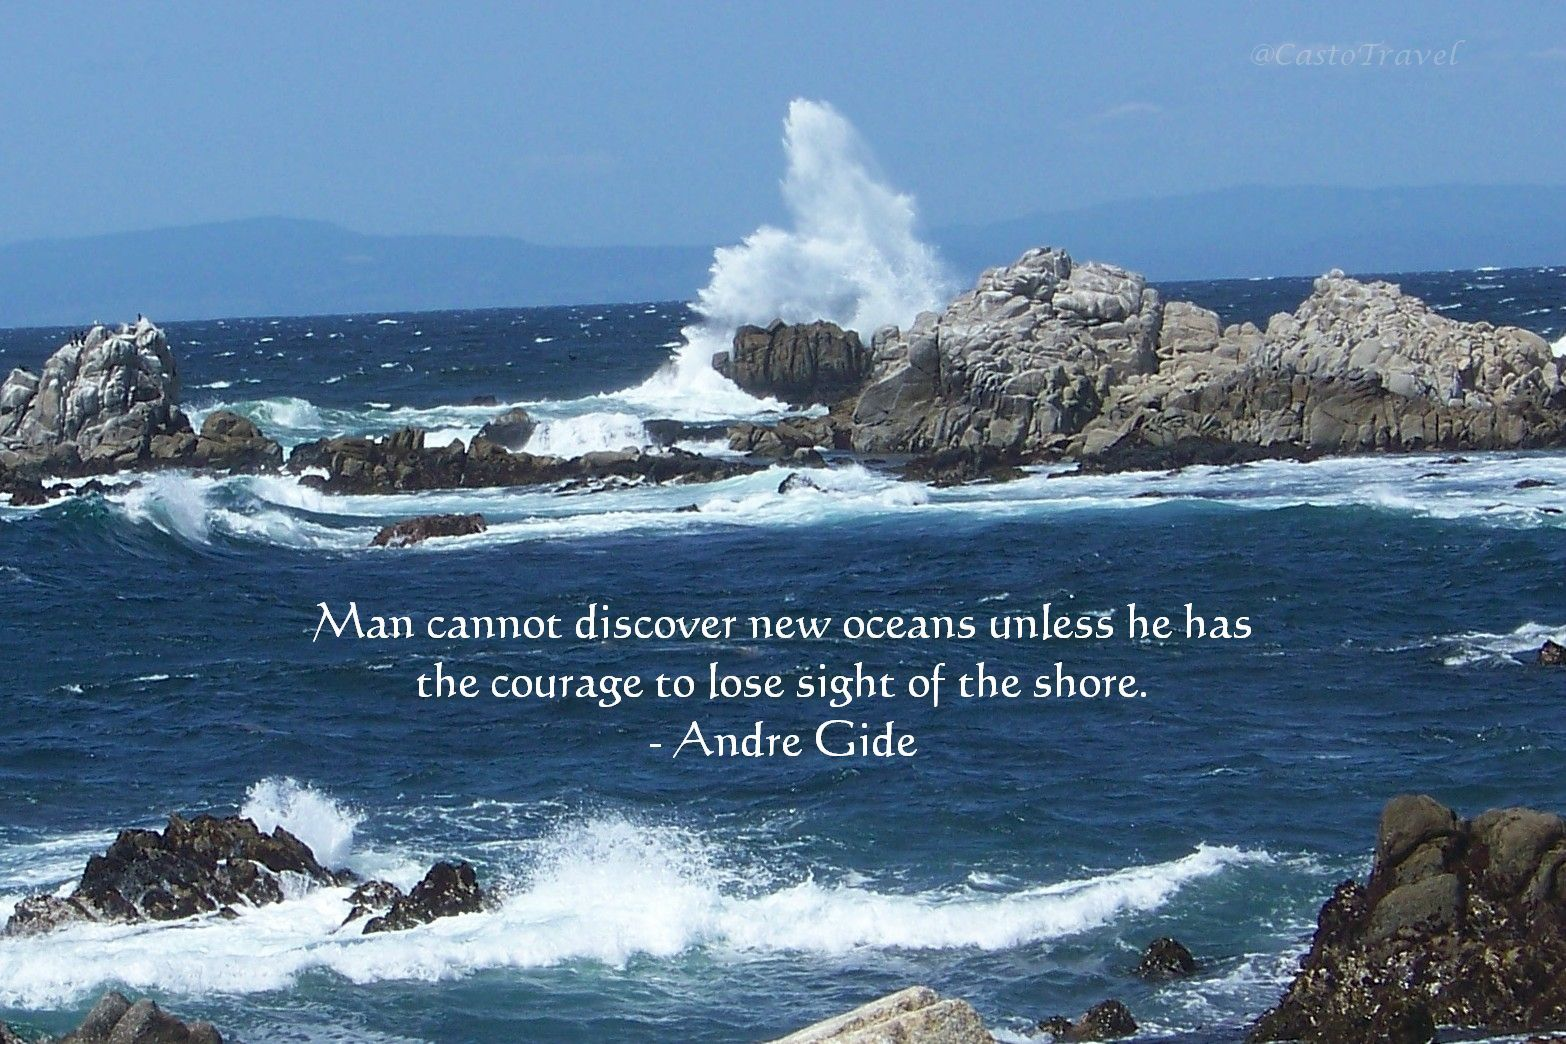 A man cannot discover new oceans unless he has the courage to lose sight of the shore.  - Andre Gide